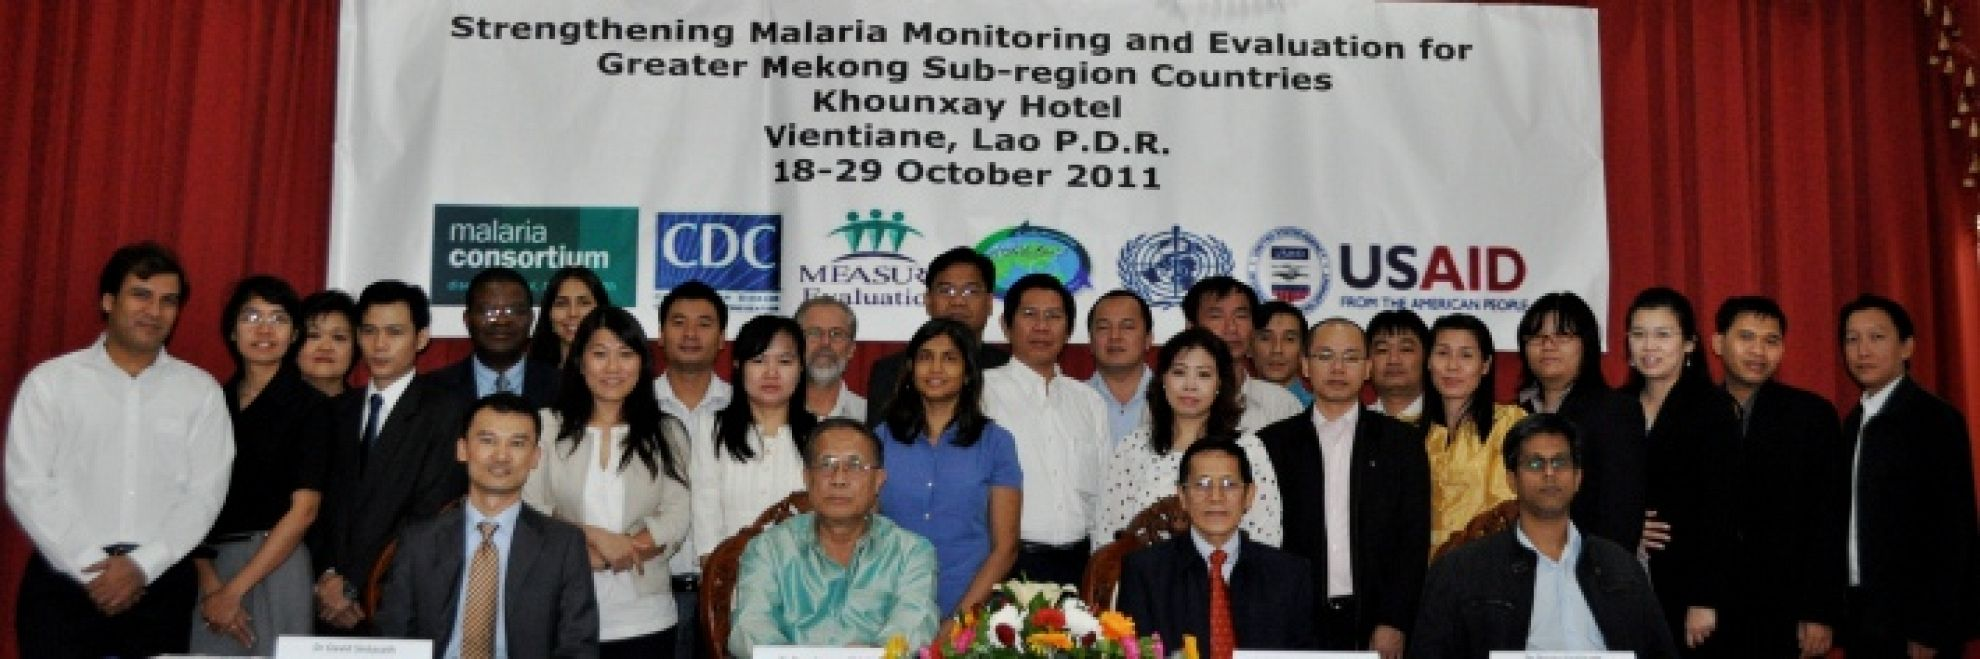 Latest News Strengthening malaria monitoring and evaluation for the greater mekong sub region countries